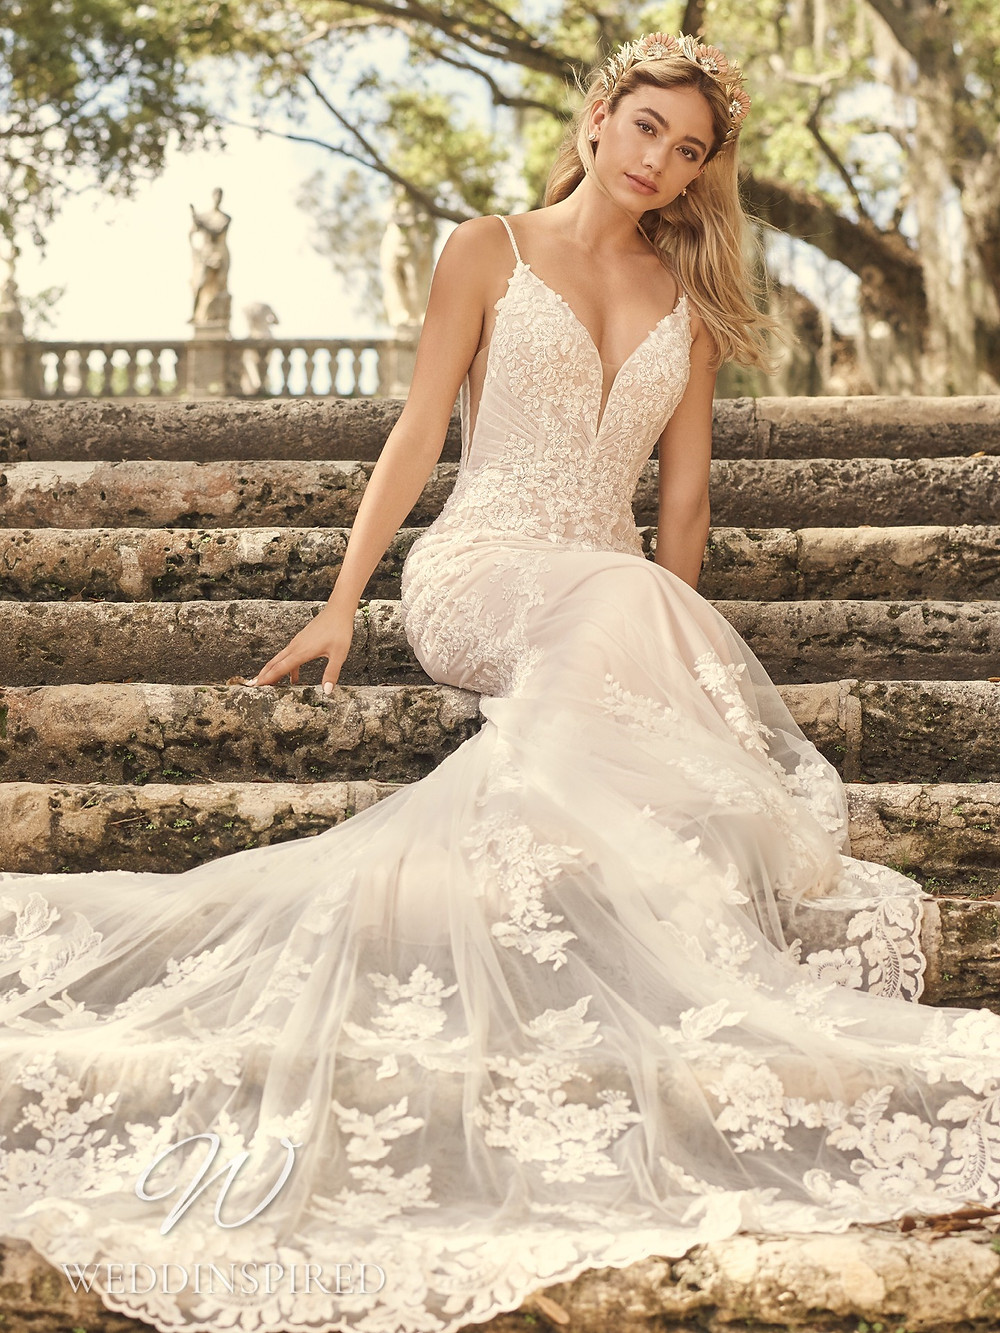 A Maggie Sottero 2021 lace and tulle mermaid wedding dress